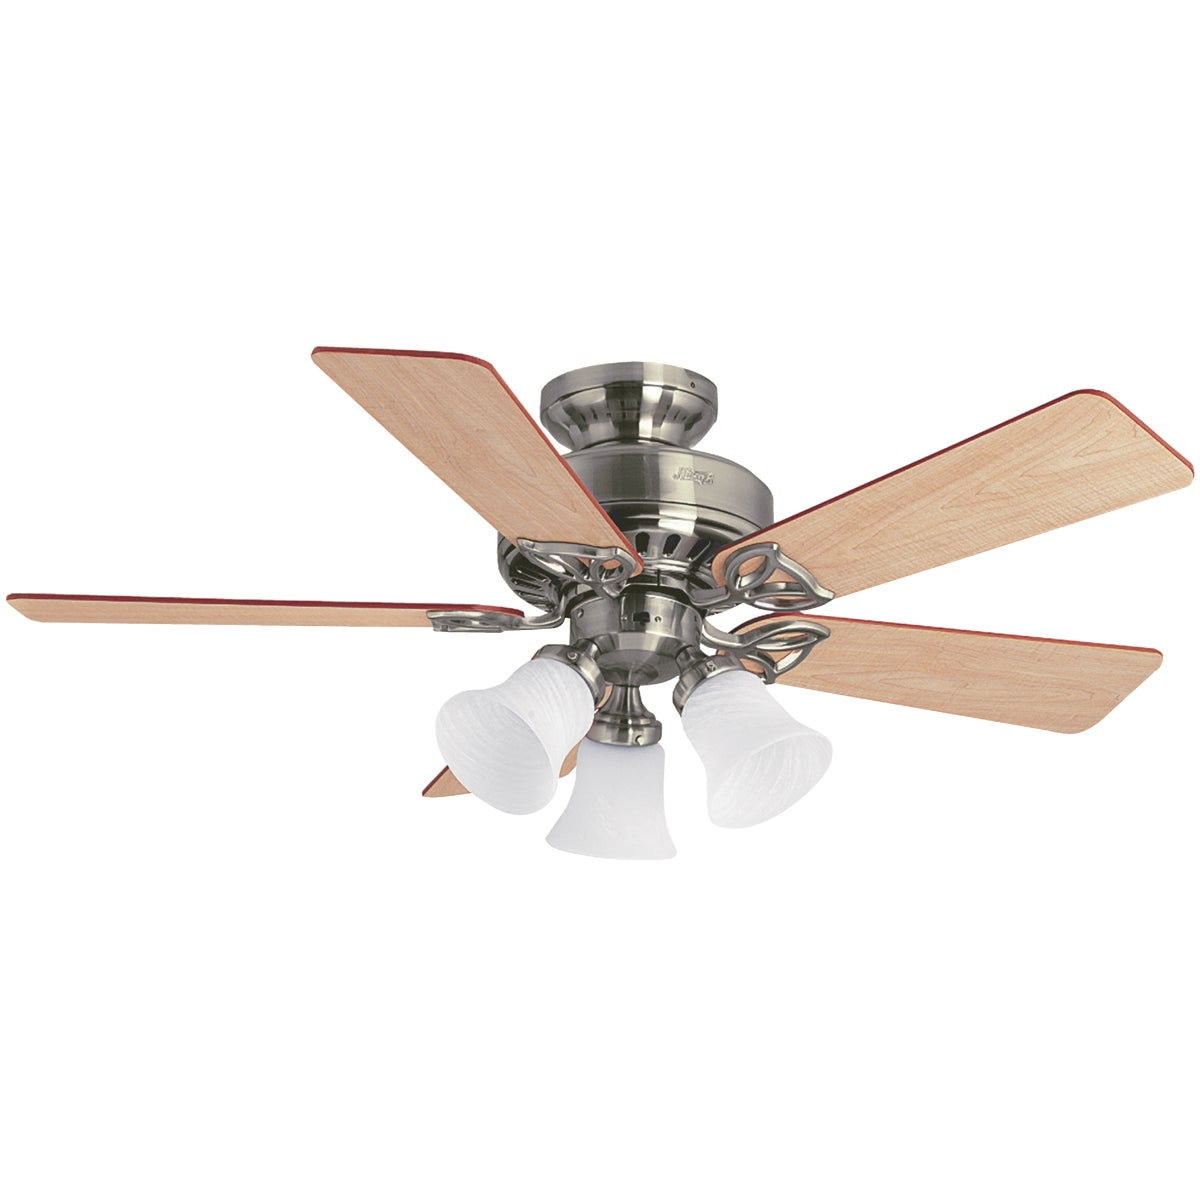 "42"" NKL CEIL FAN W/LIGHT - 53079 by Hunter Fan Co"